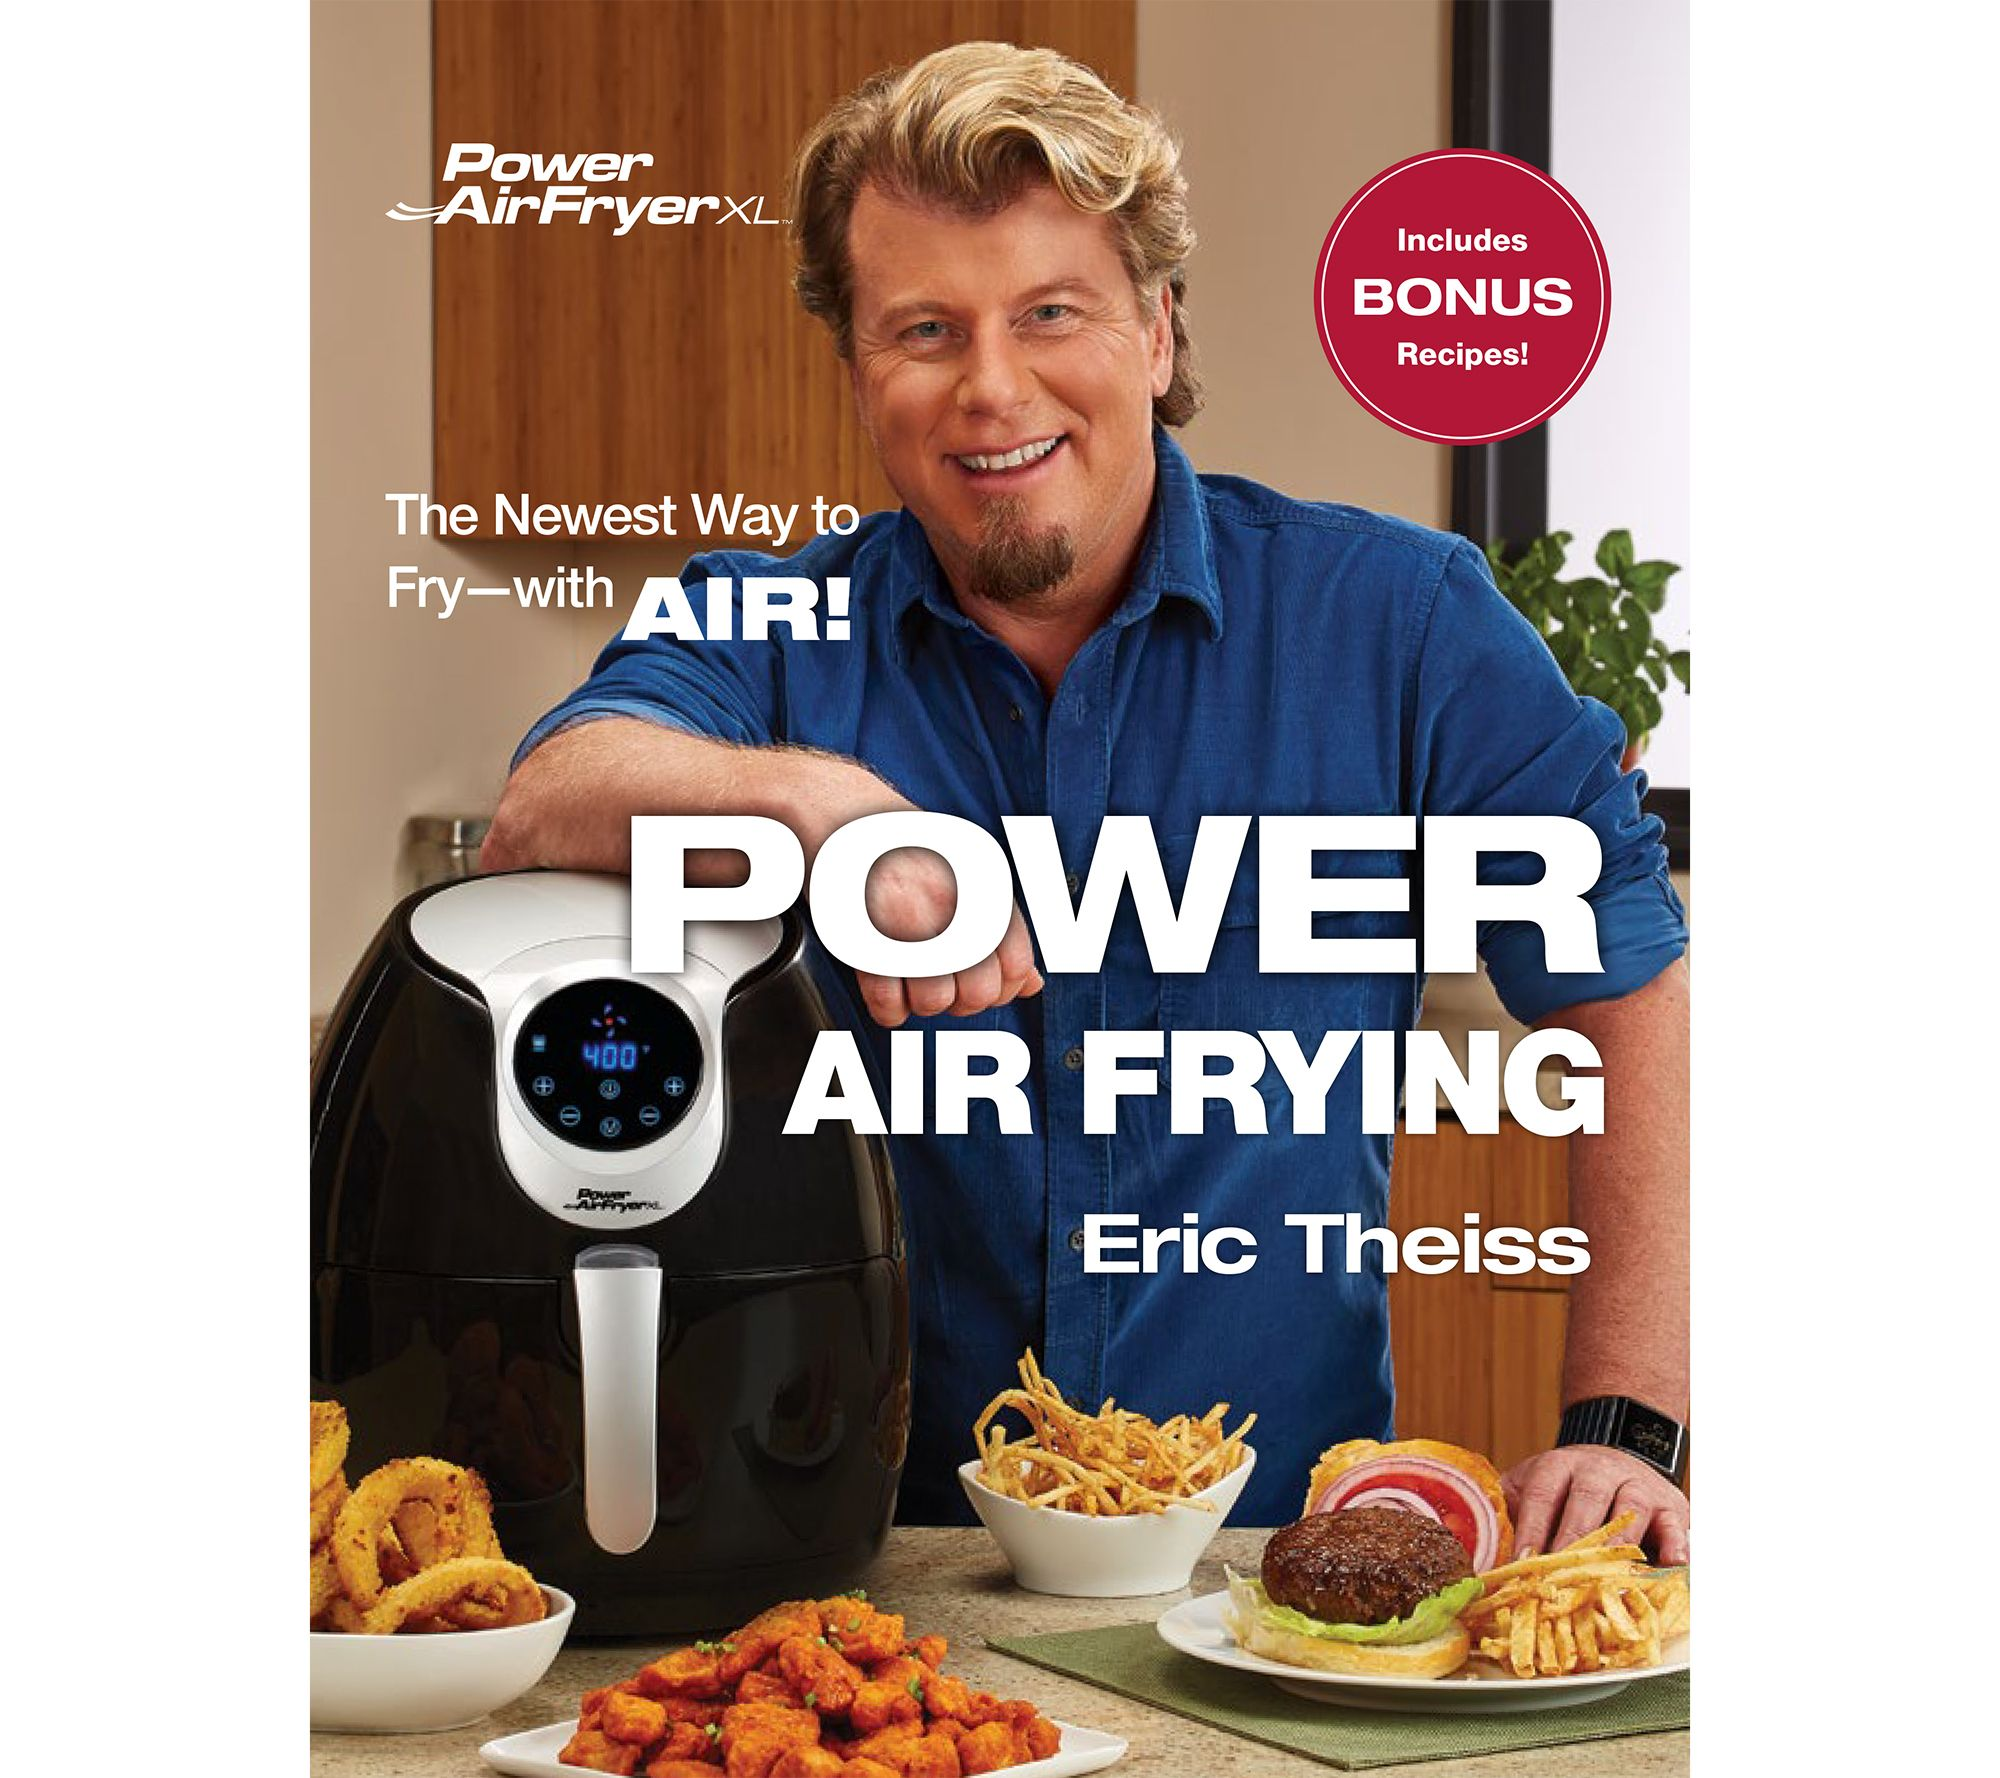 Quot Power Air Frying Quot Cookbook By Eric Theiss Page 1 Qvc Com